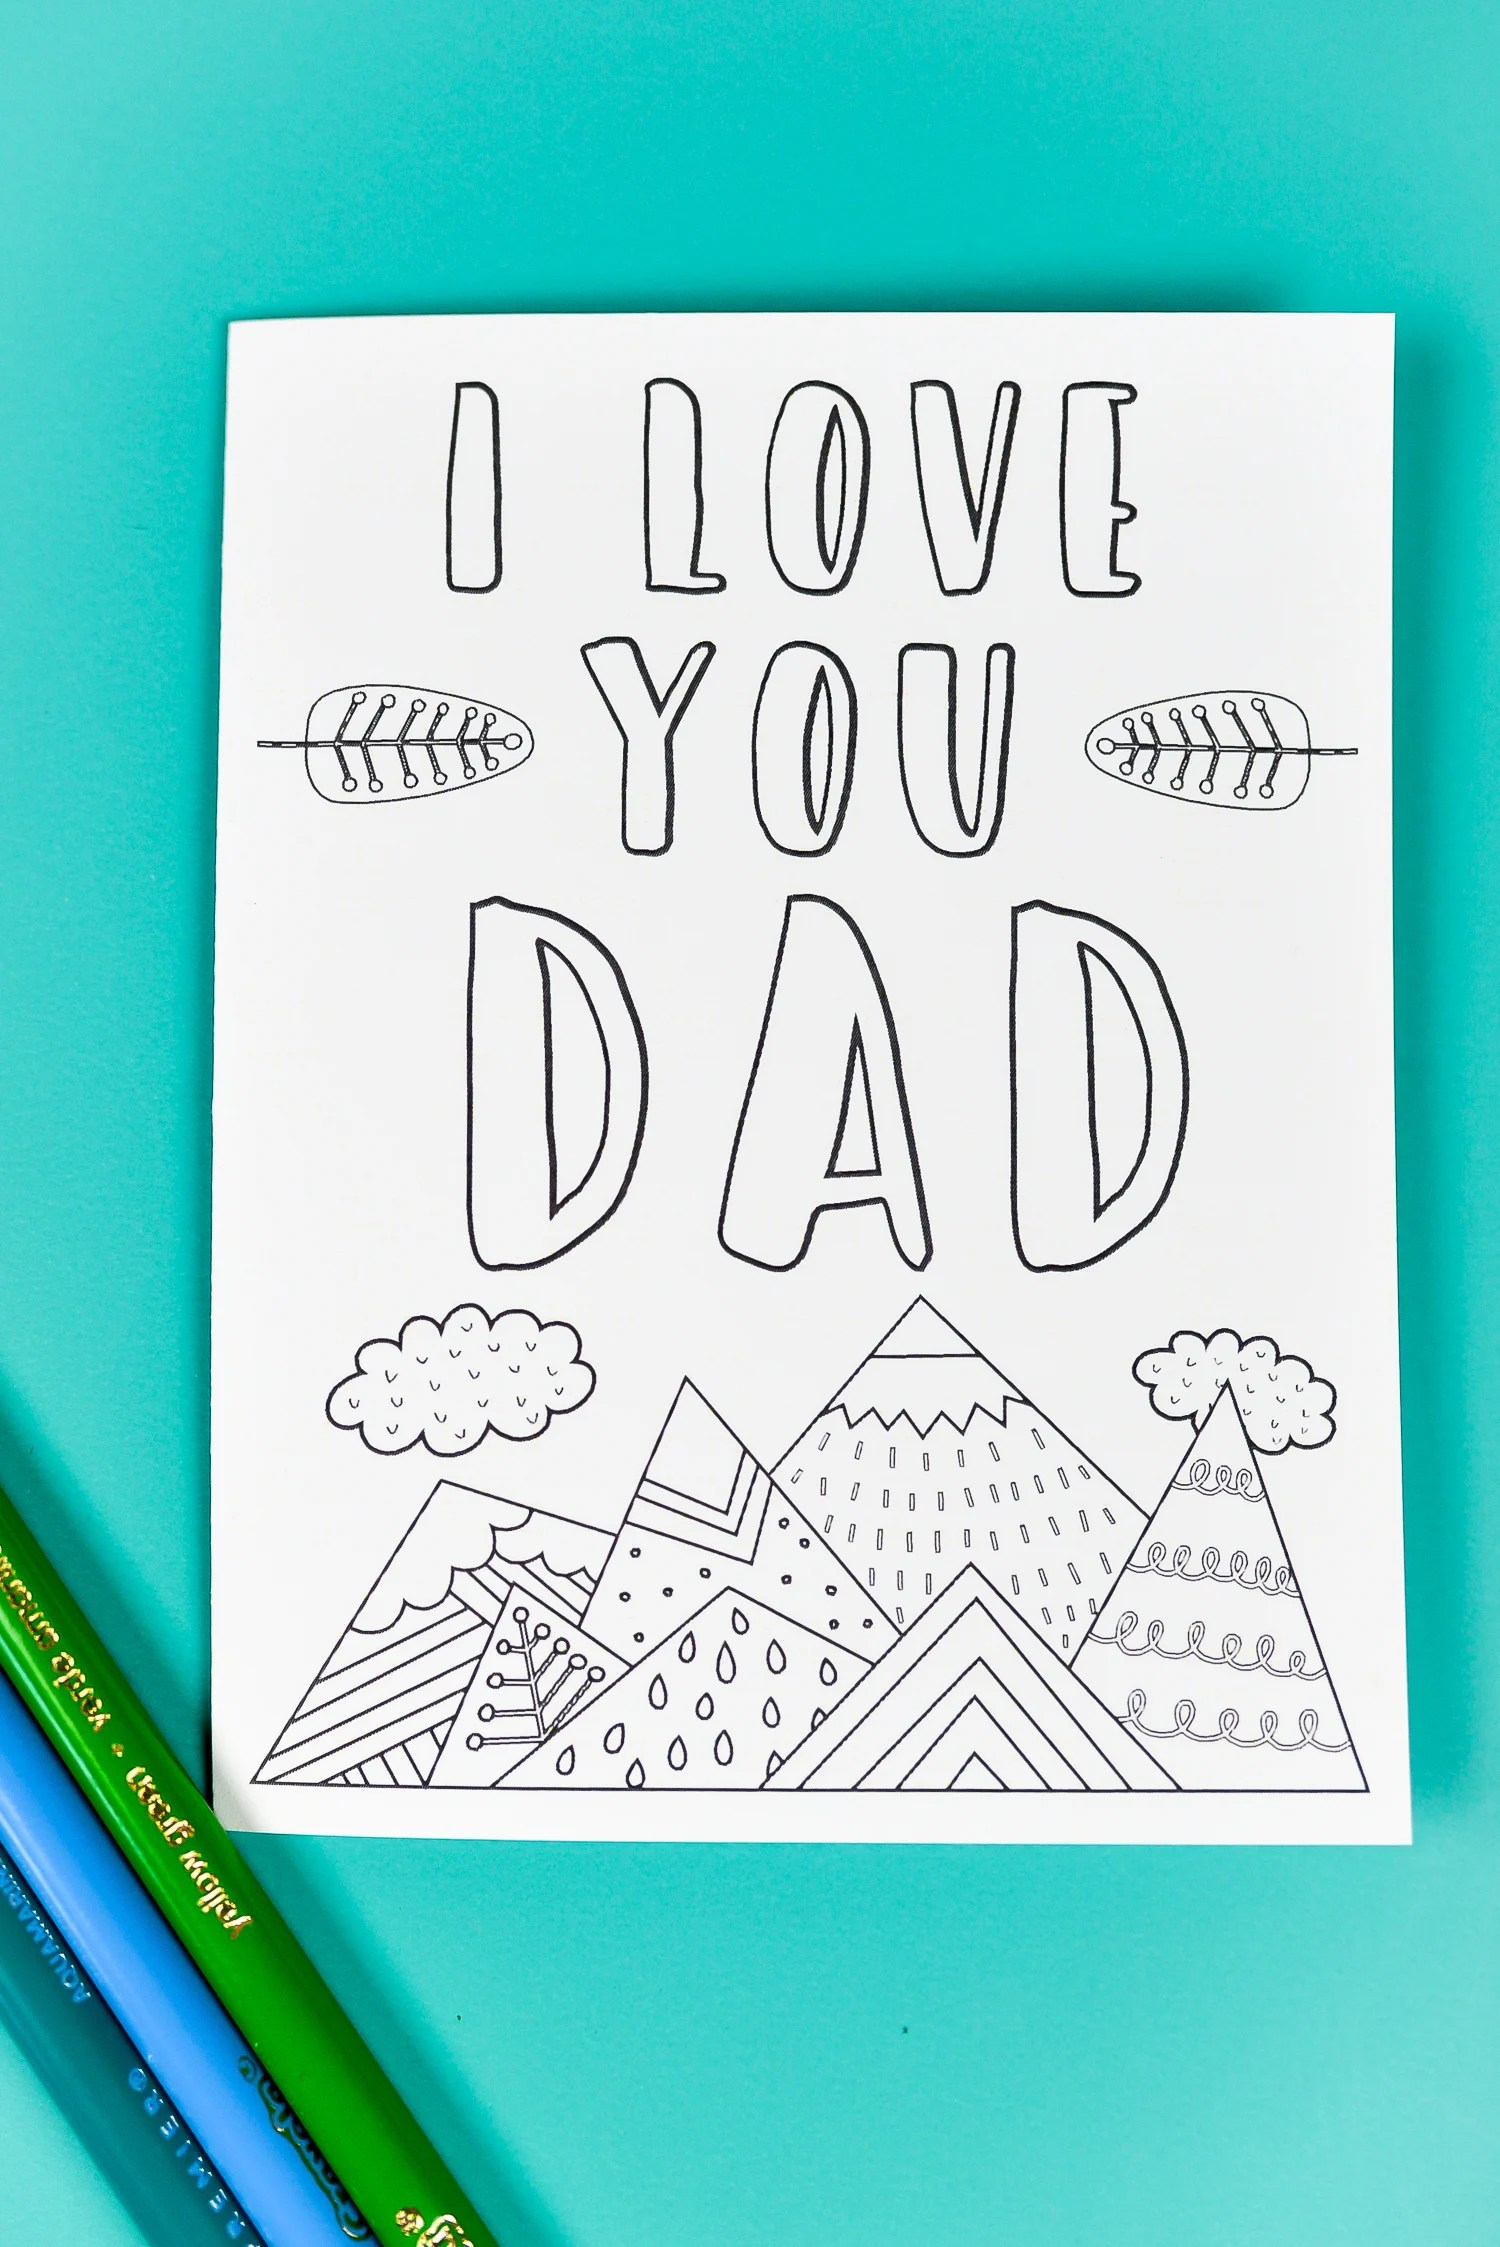 photograph regarding Father's Day Card Printable called Printable Fathers Working day Card Present Tags + Reward Coloring Web site!